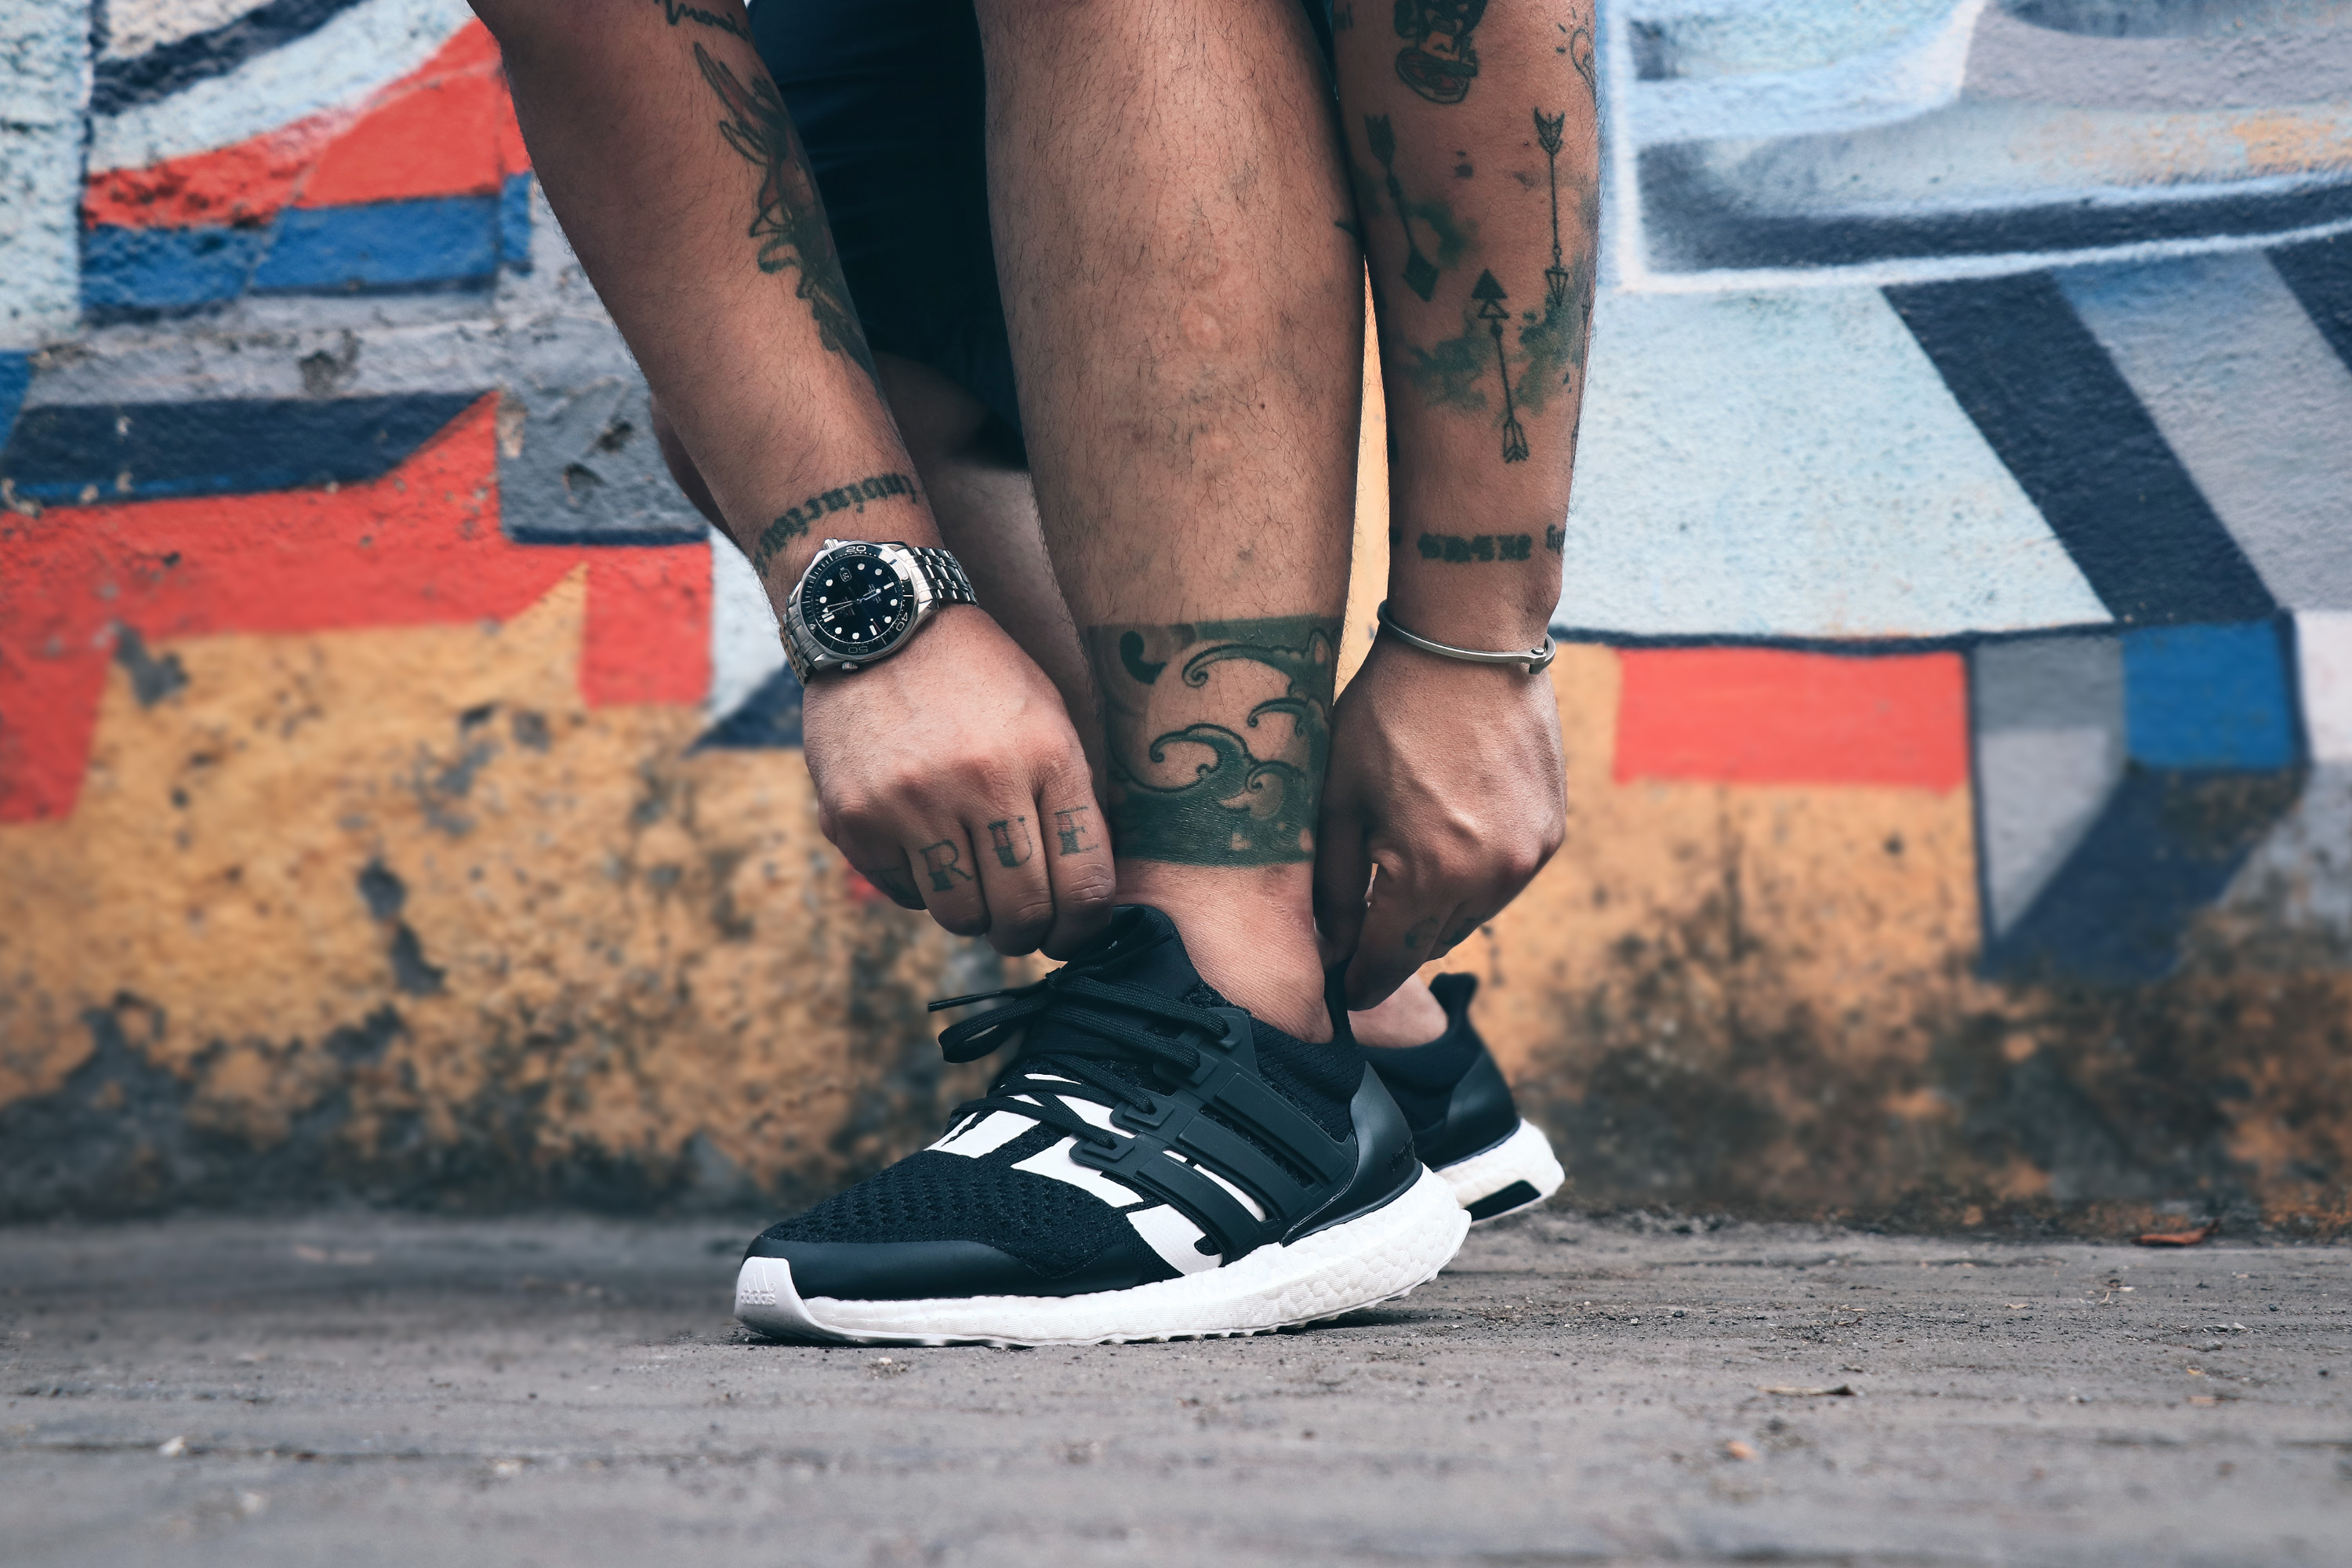 Streetwear Fit with the Undefeated X adidas UltraBoost 1.0